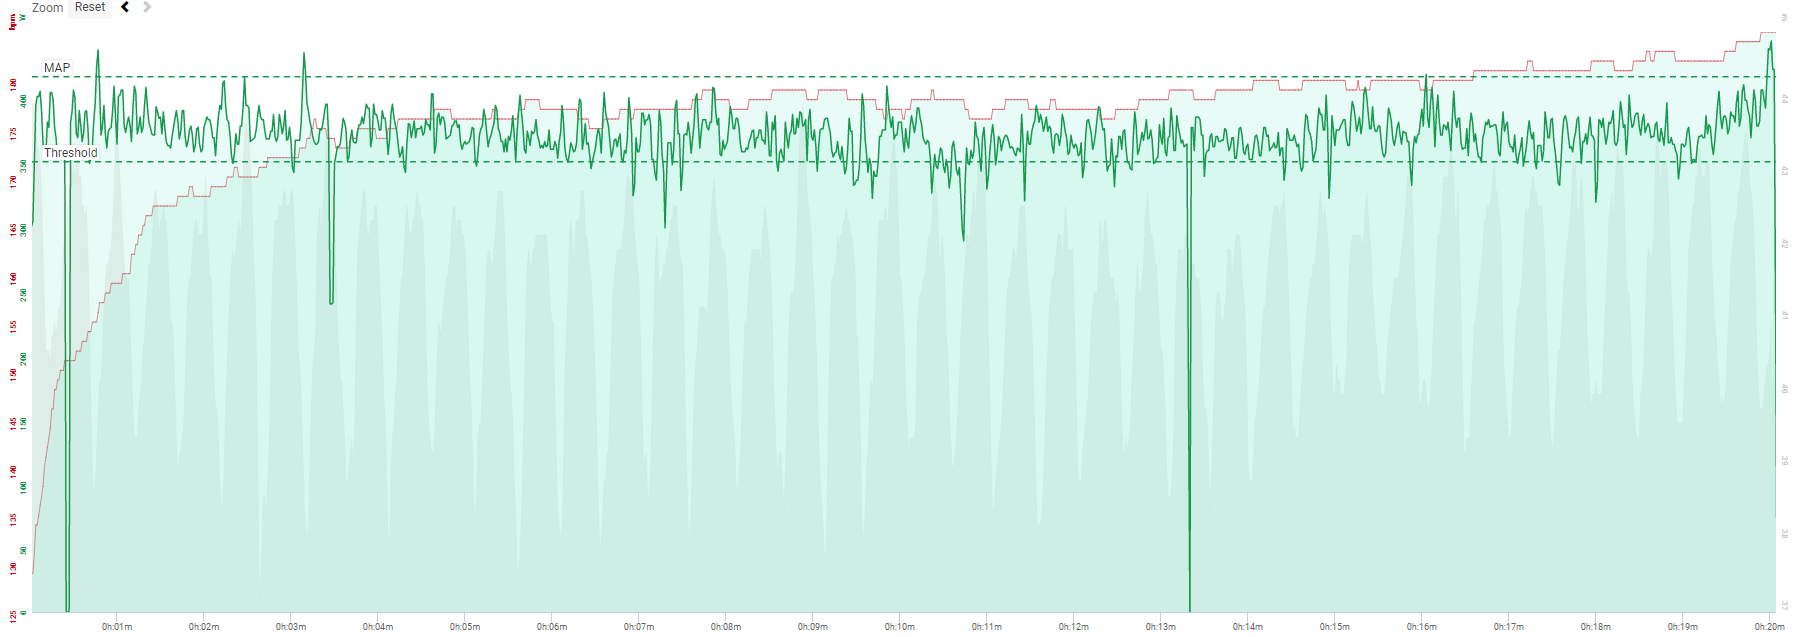 Jordy's best 20 minute power,recorded in November 2016, performed on his TT bike. Jordy average power output was 369 Watts for 20 minutes, equivalent to 89% of his MAP.